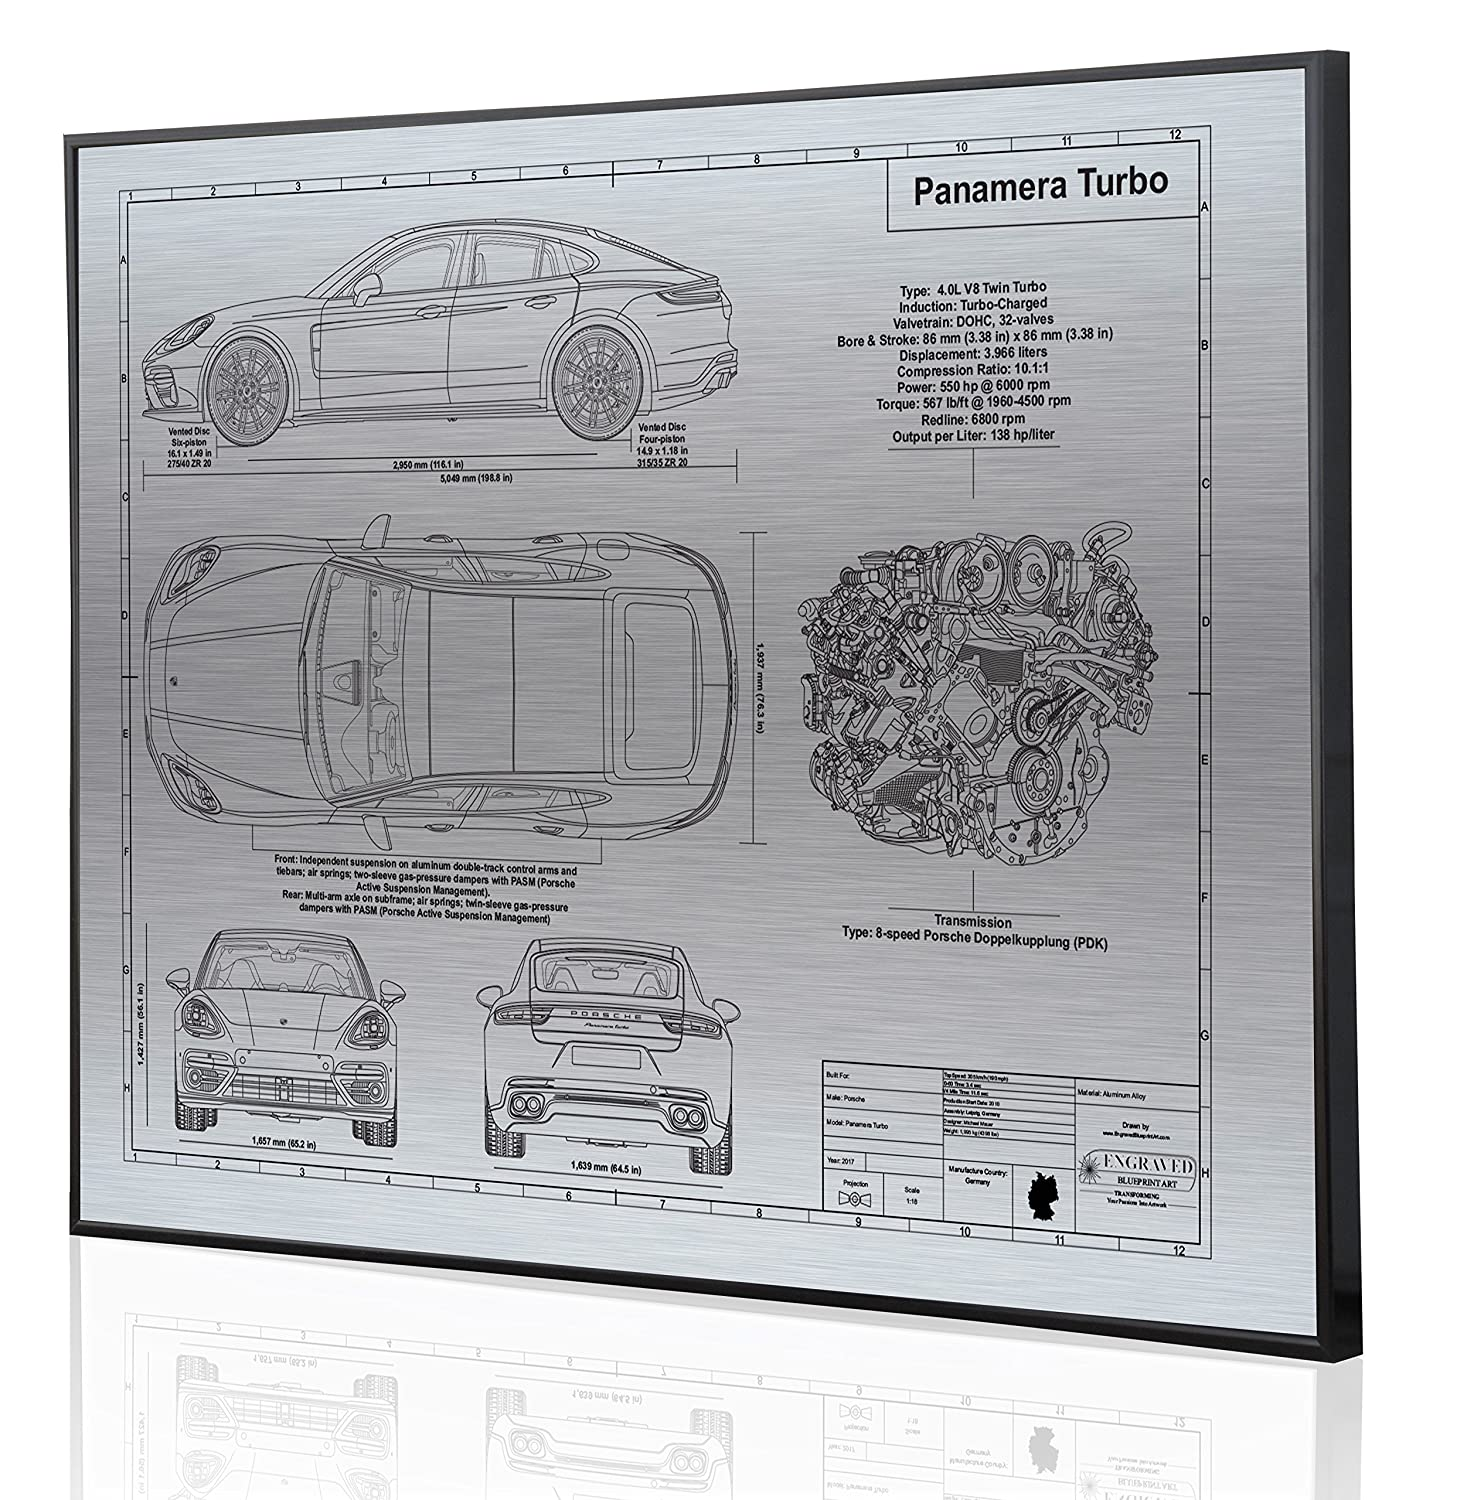 Amazon.com: Porsche 970 Panamera Turbo 2017 Blueprint Artwork-Laser Marked & Personalized-The Perfect Porsche Gifts: Handmade